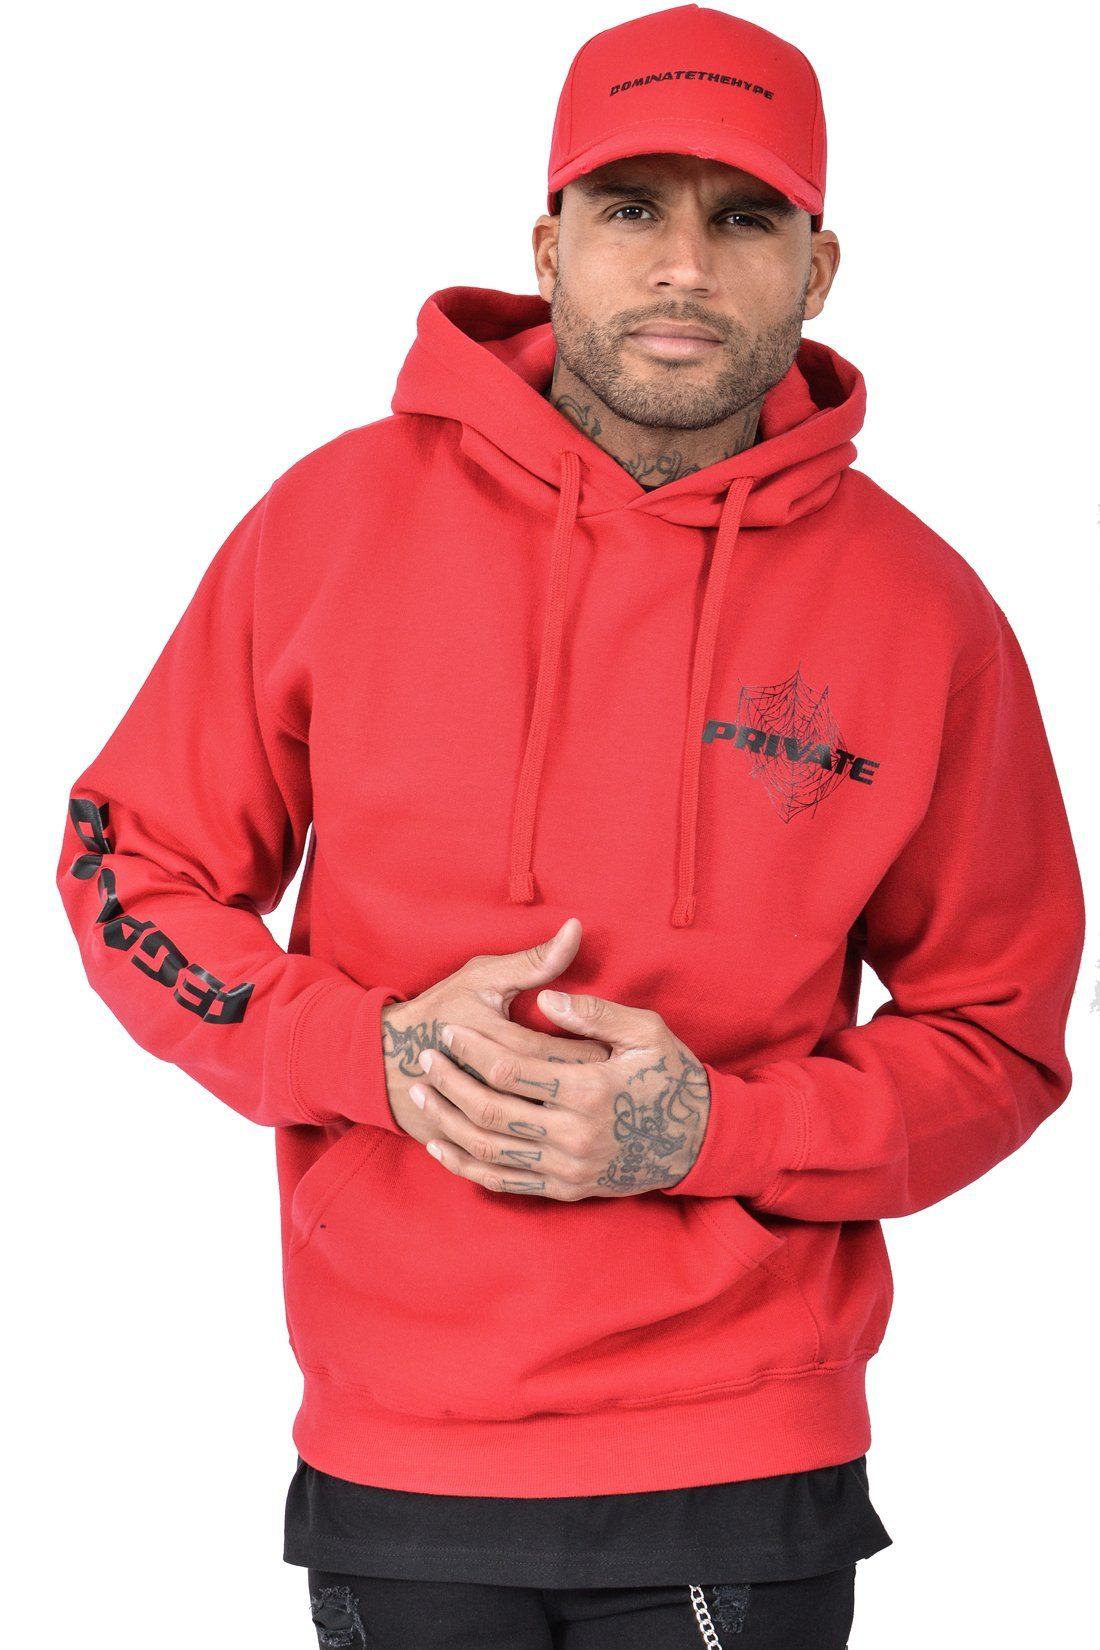 Figo Private Hoodie Red - PEGADOR - Dominate the Hype